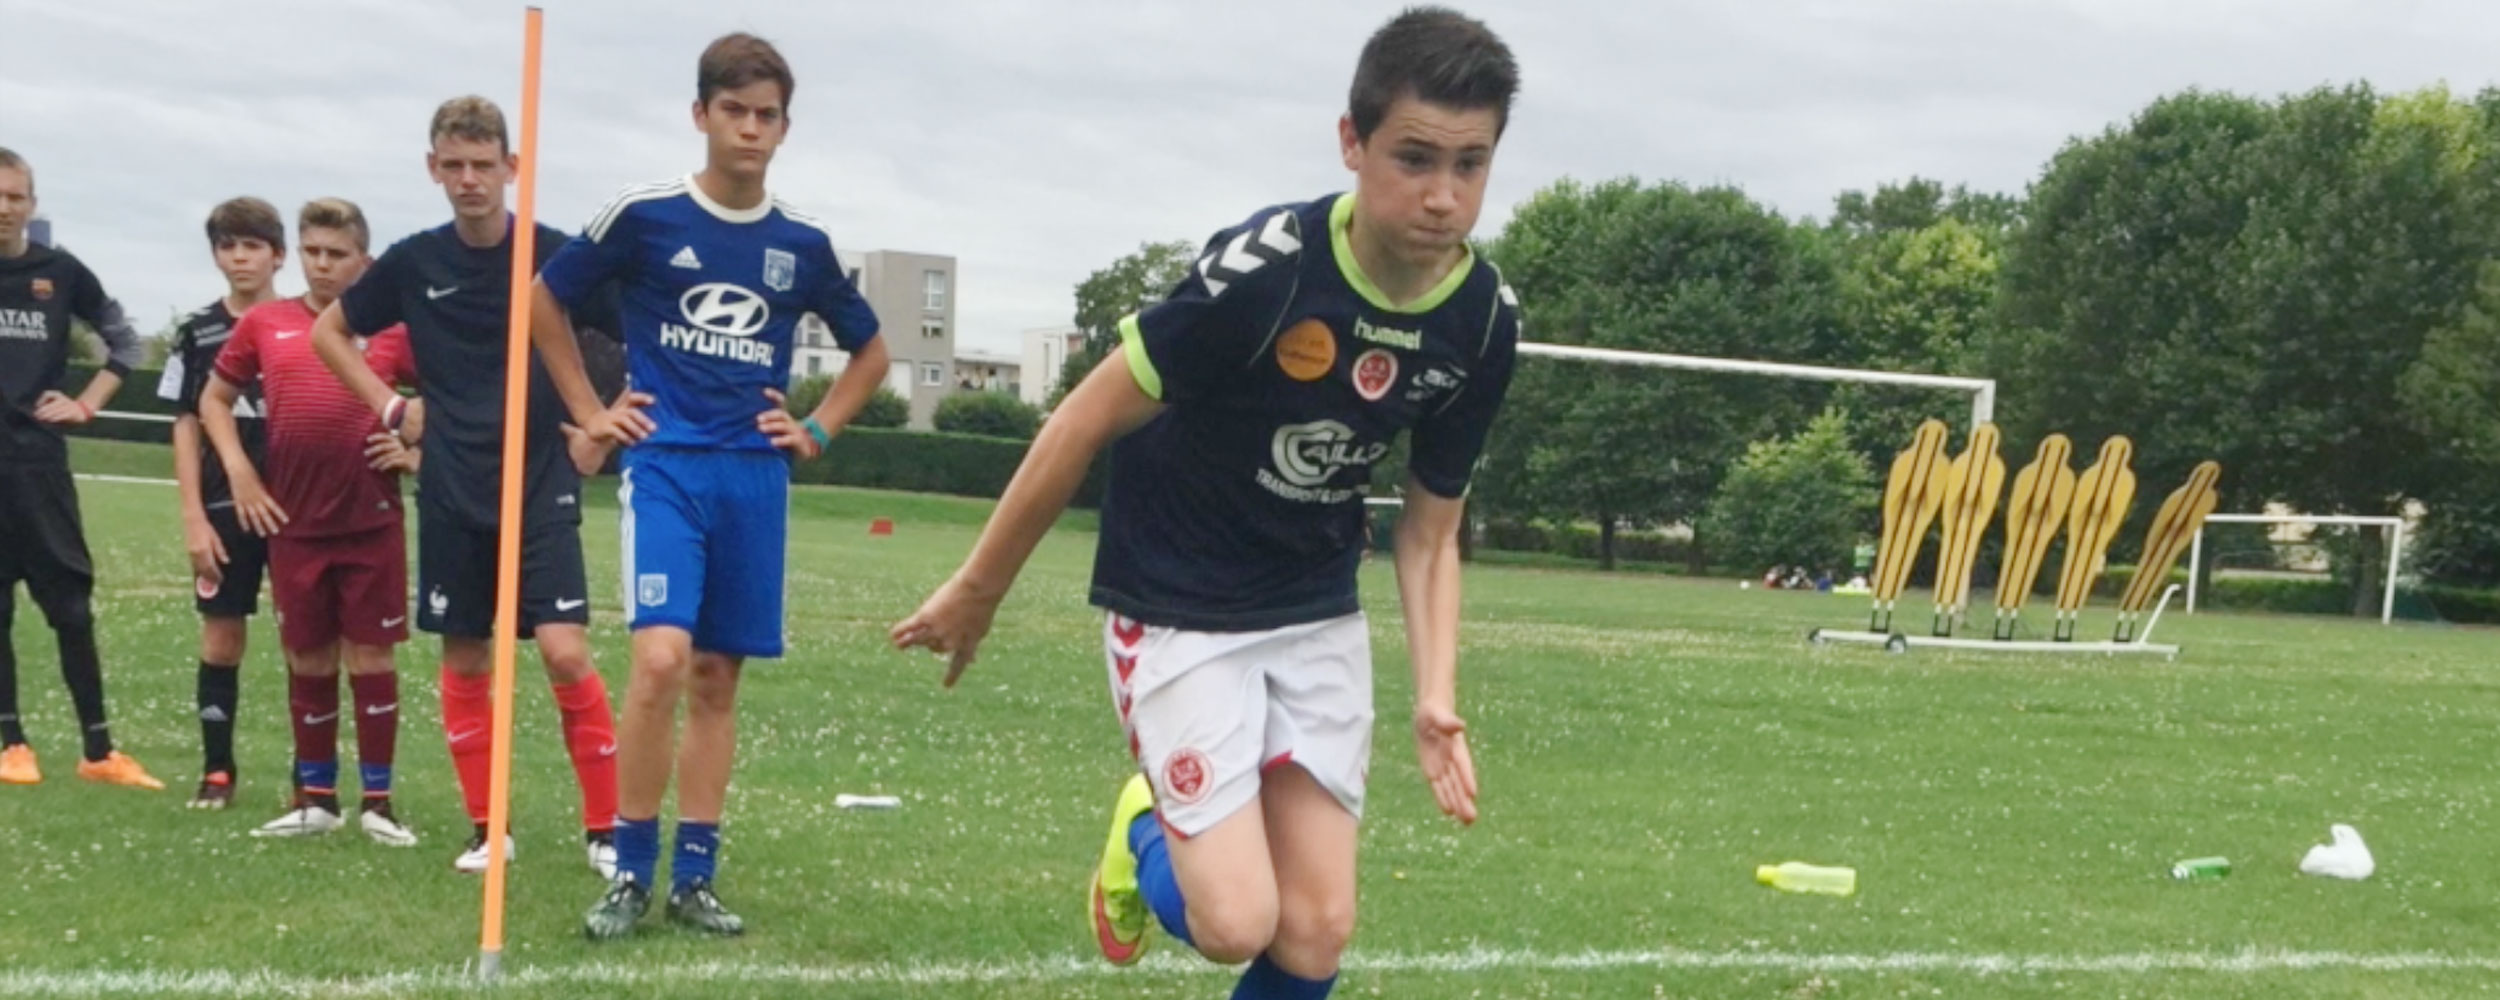 foot passion reims